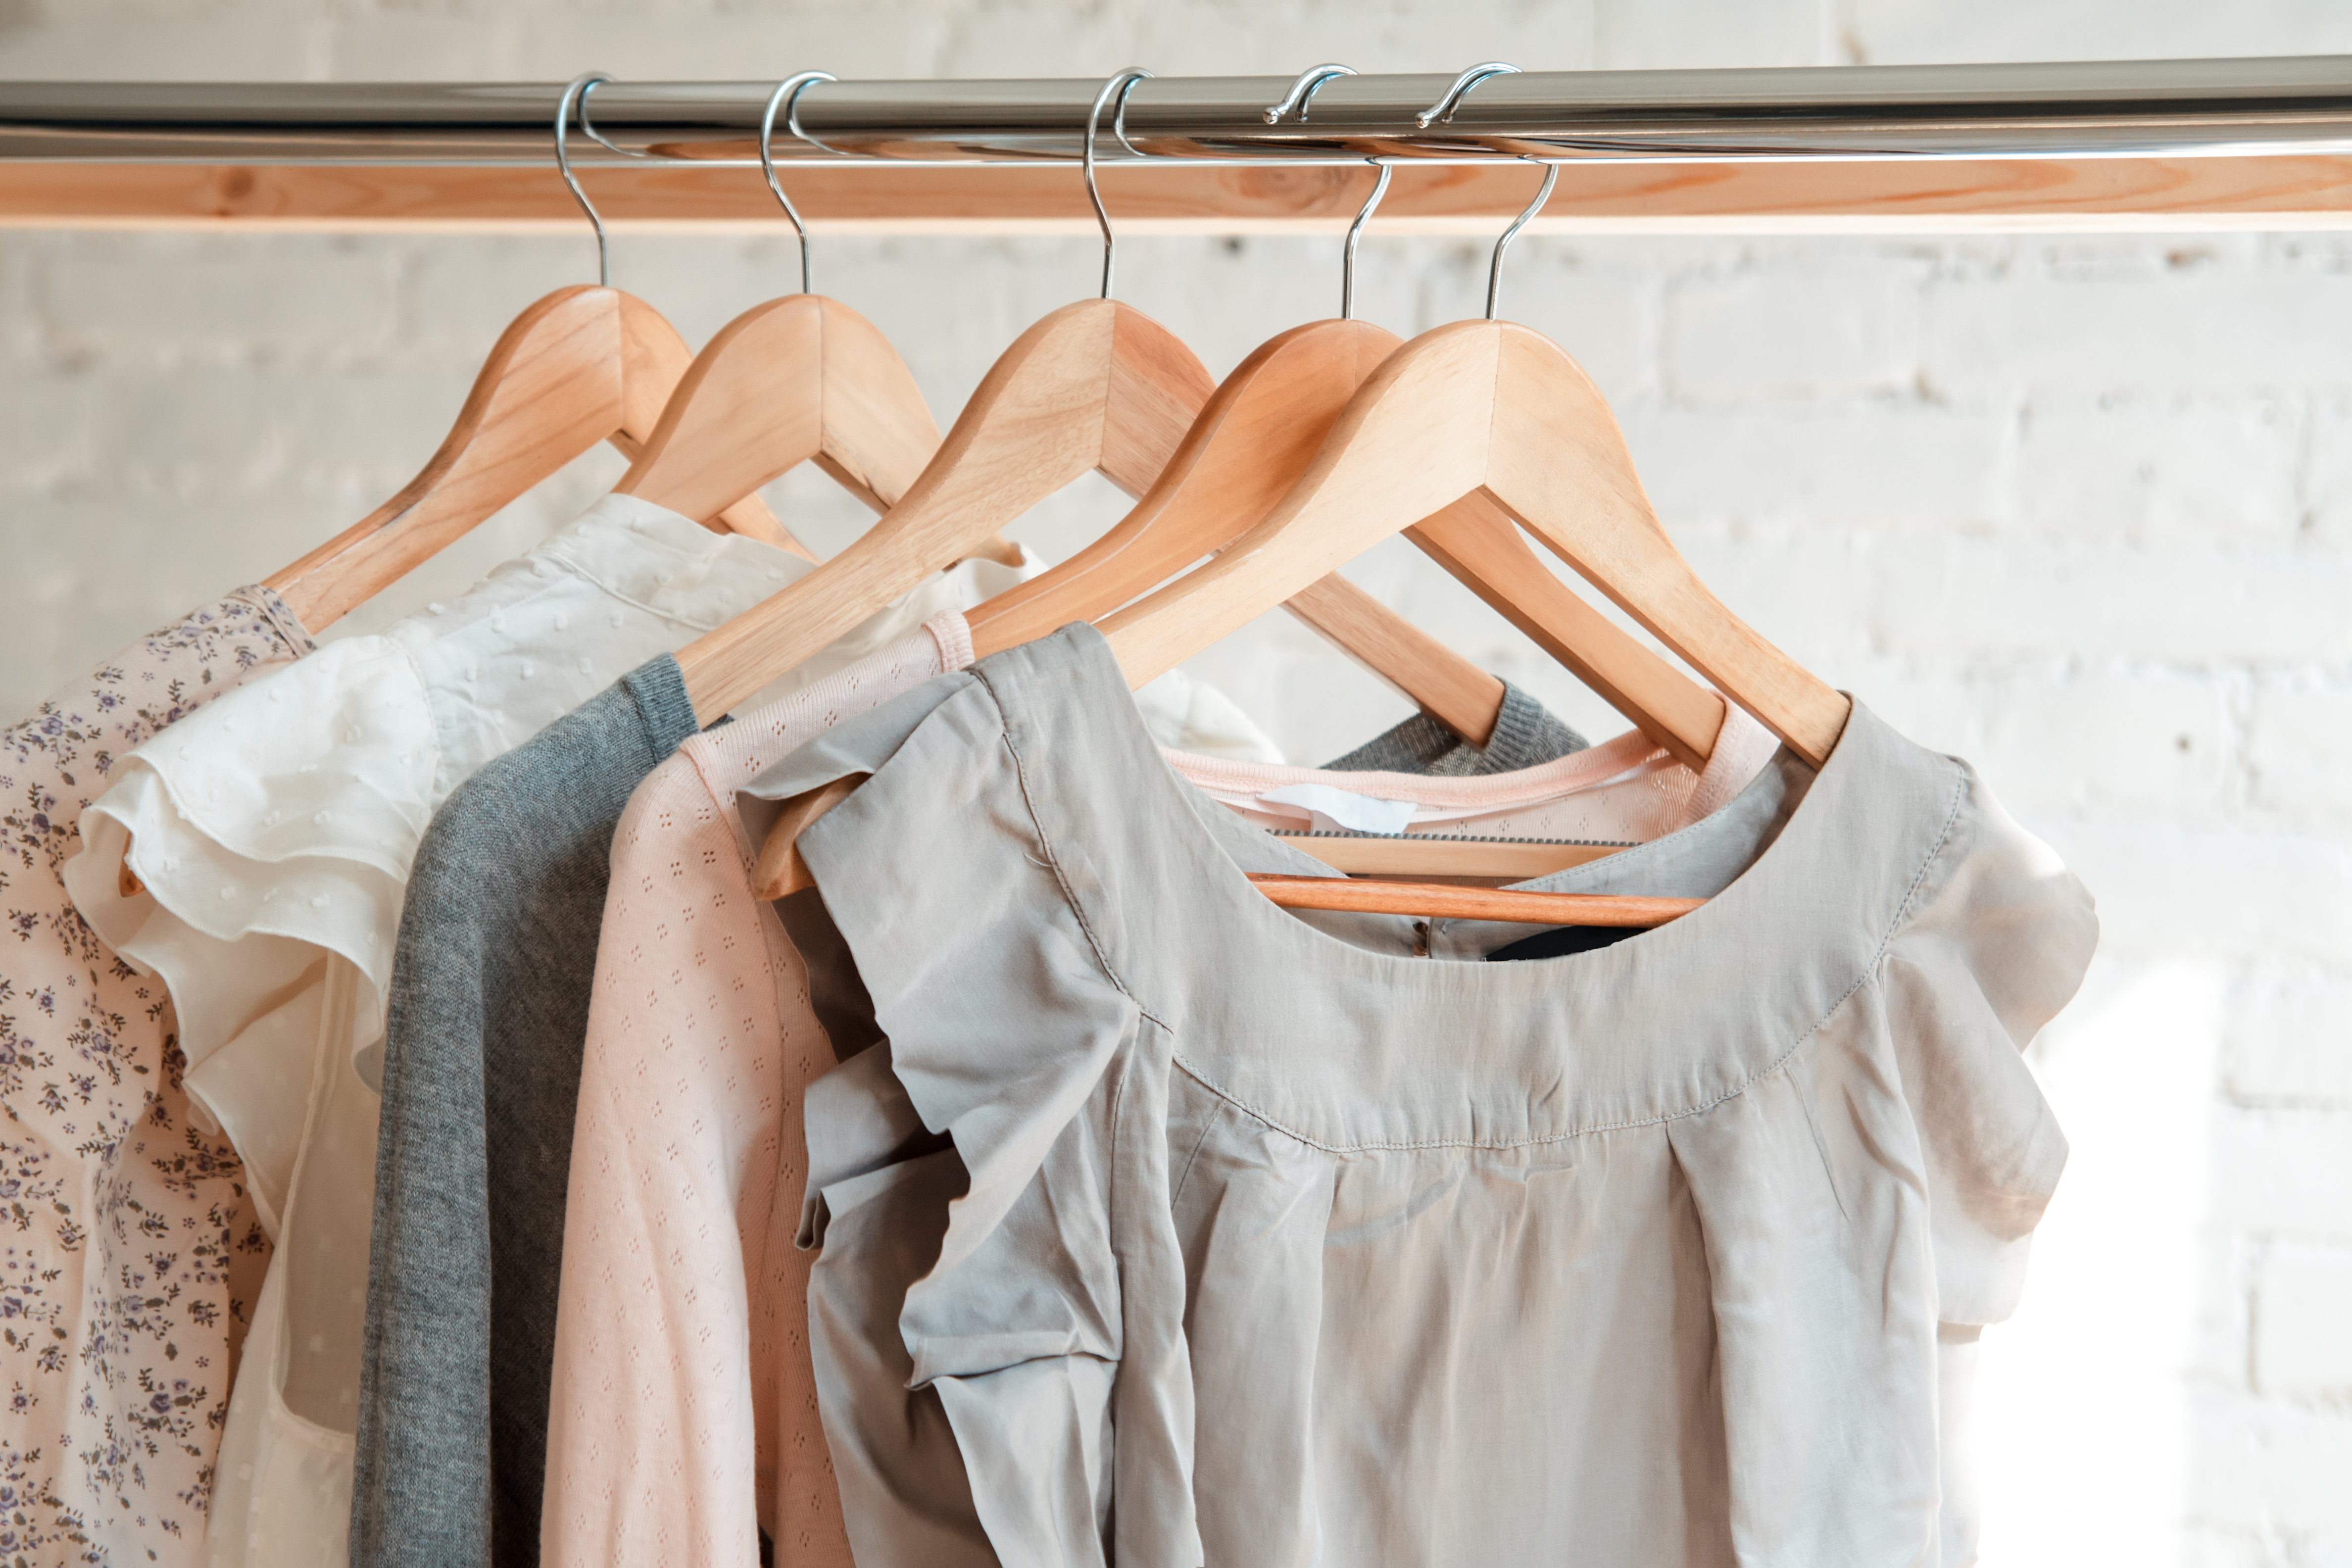 How To Get Rid Of The Musty Smell In A Clothes Closet | Hunker